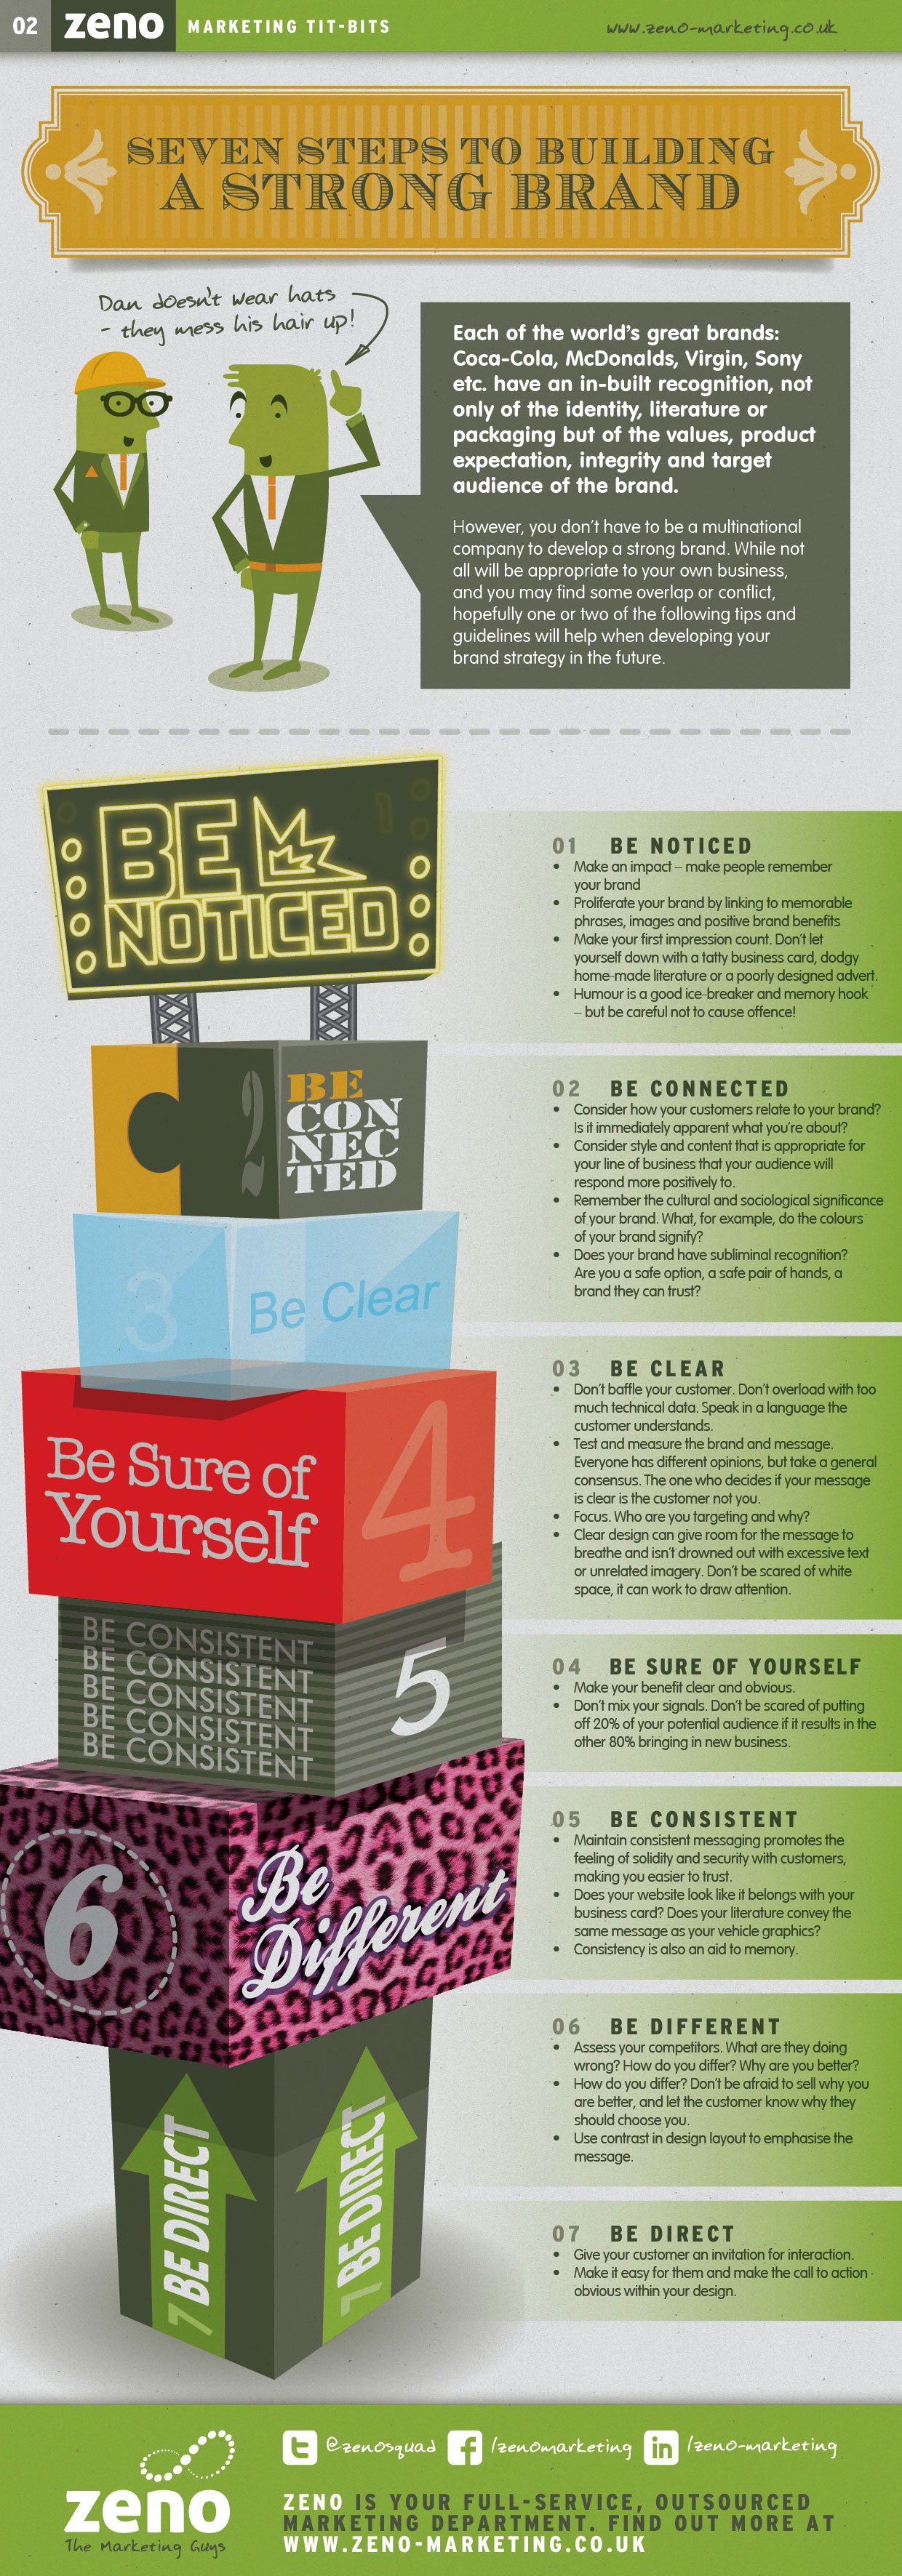 7 Steps To Make Your Brand More Powerful